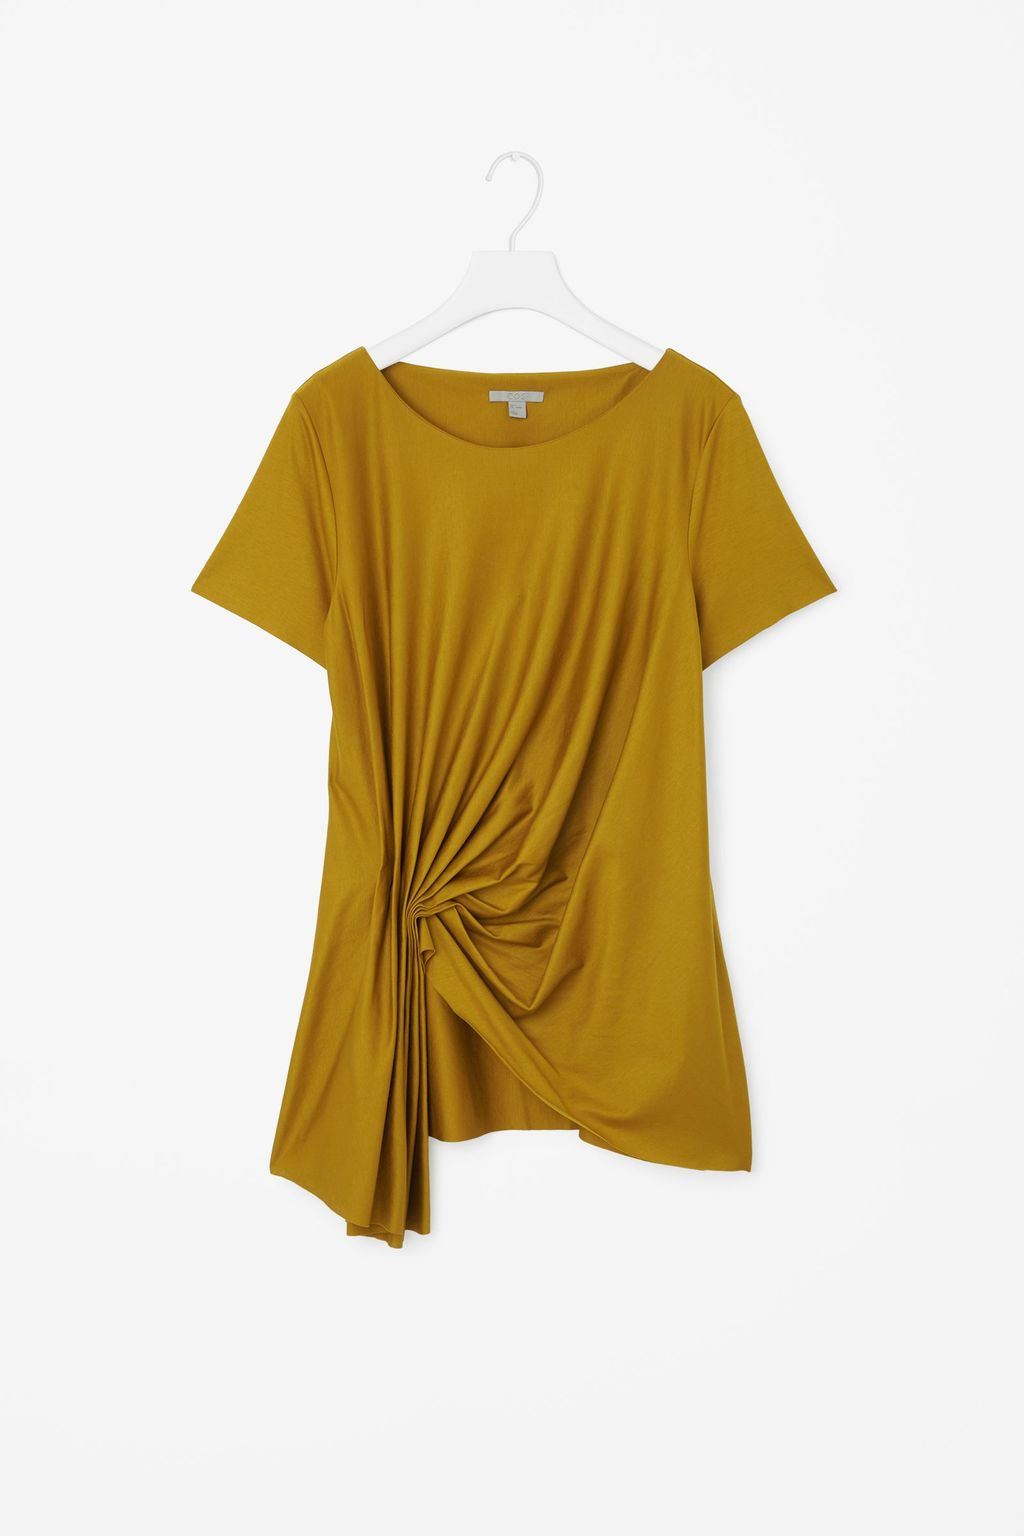 Top With Front Drape Detail - neckline: round neck; pattern: plain; style: t-shirt; waist detail: flattering waist detail; predominant colour: mustard; occasions: casual; length: standard; fibres: cotton - 100%; fit: body skimming; sleeve length: short sleeve; sleeve style: standard; pattern type: fabric; texture group: jersey - stretchy/drapey; season: s/s 2016; wardrobe: highlight